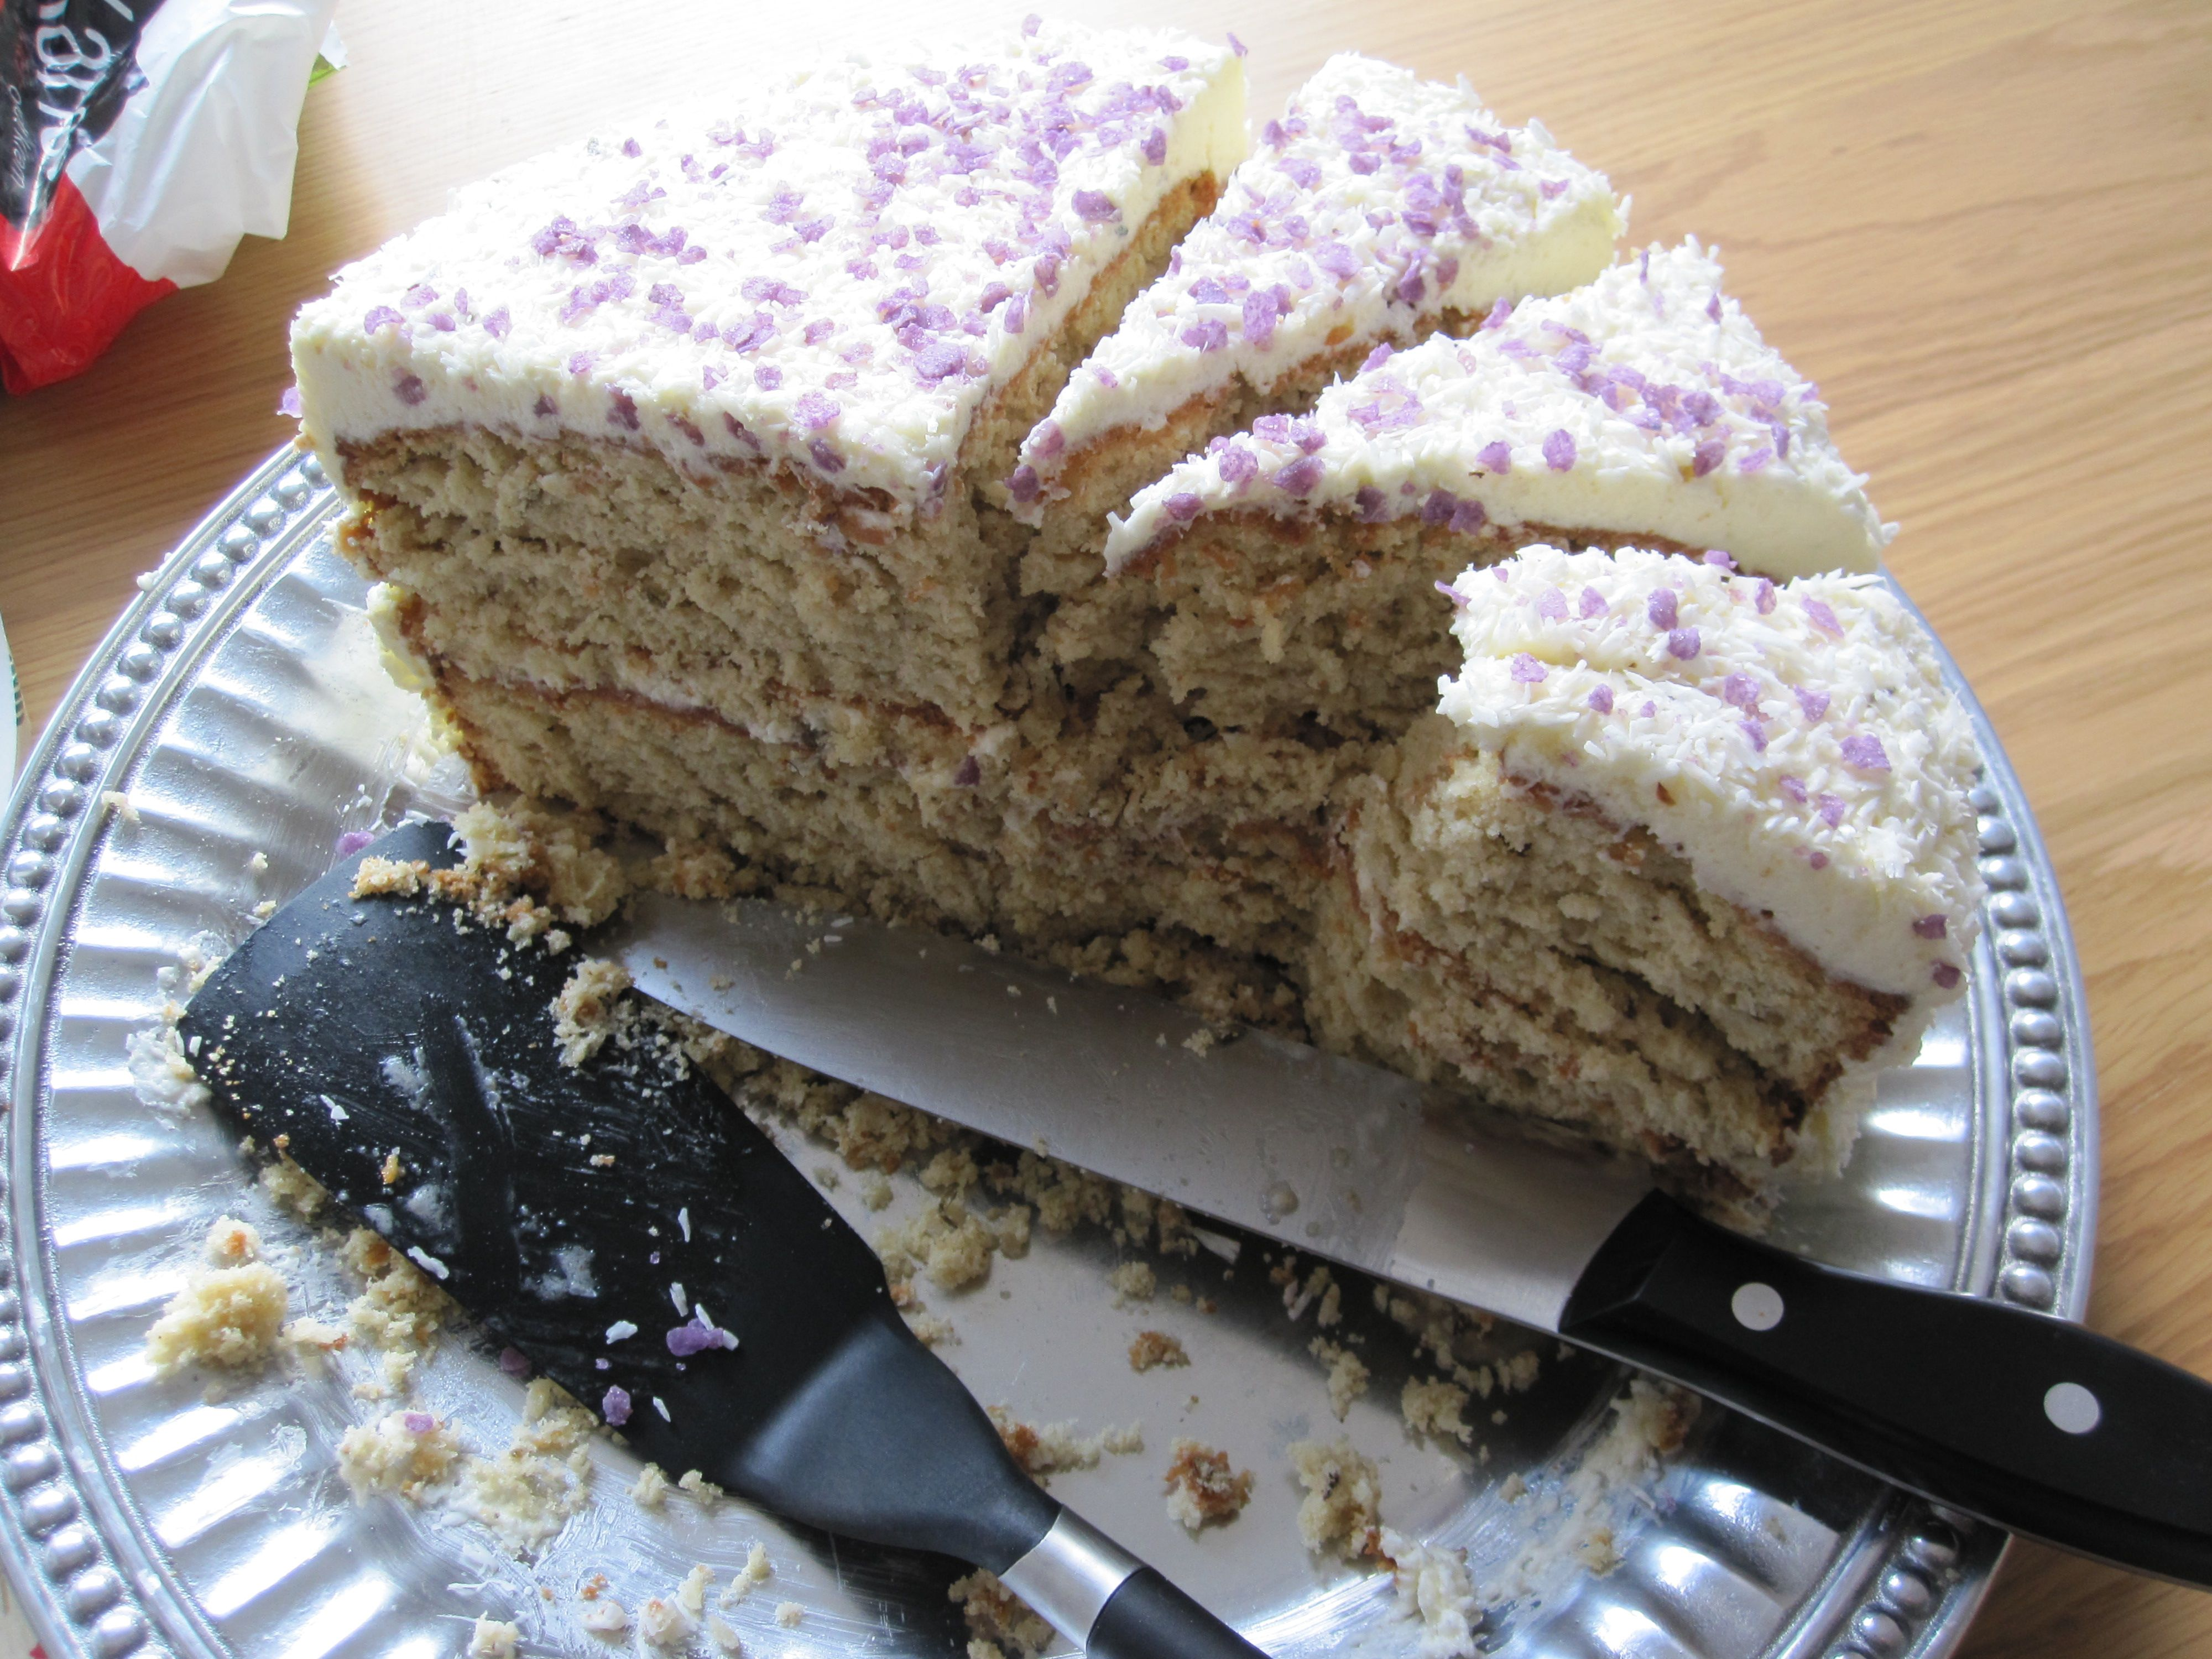 Lavender and Coconut Layer Cake with Lavender Italian Meringue Frosting (aka my favorite birthday cake!)